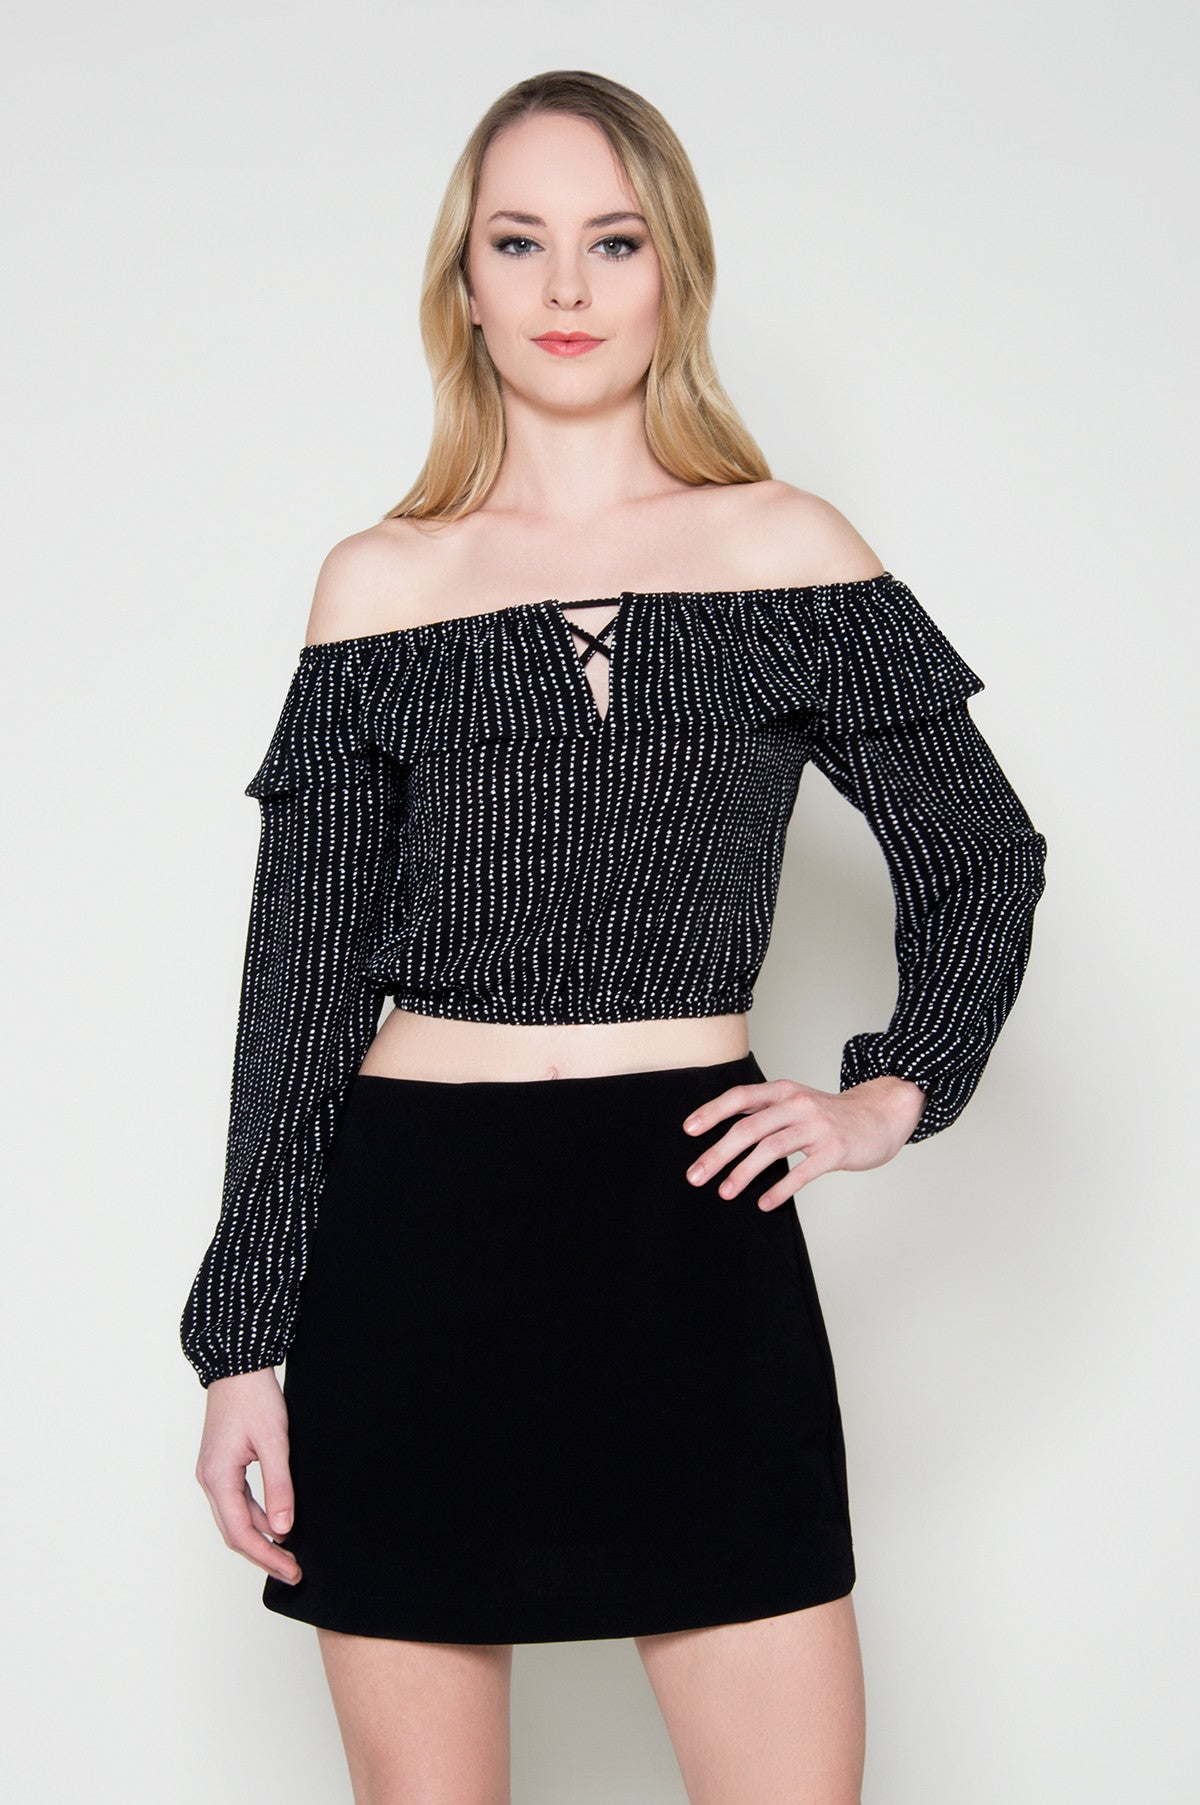 ff99b6e5b0a Catch my eye off shoulder crop top black dressy Tops modern party going out  top